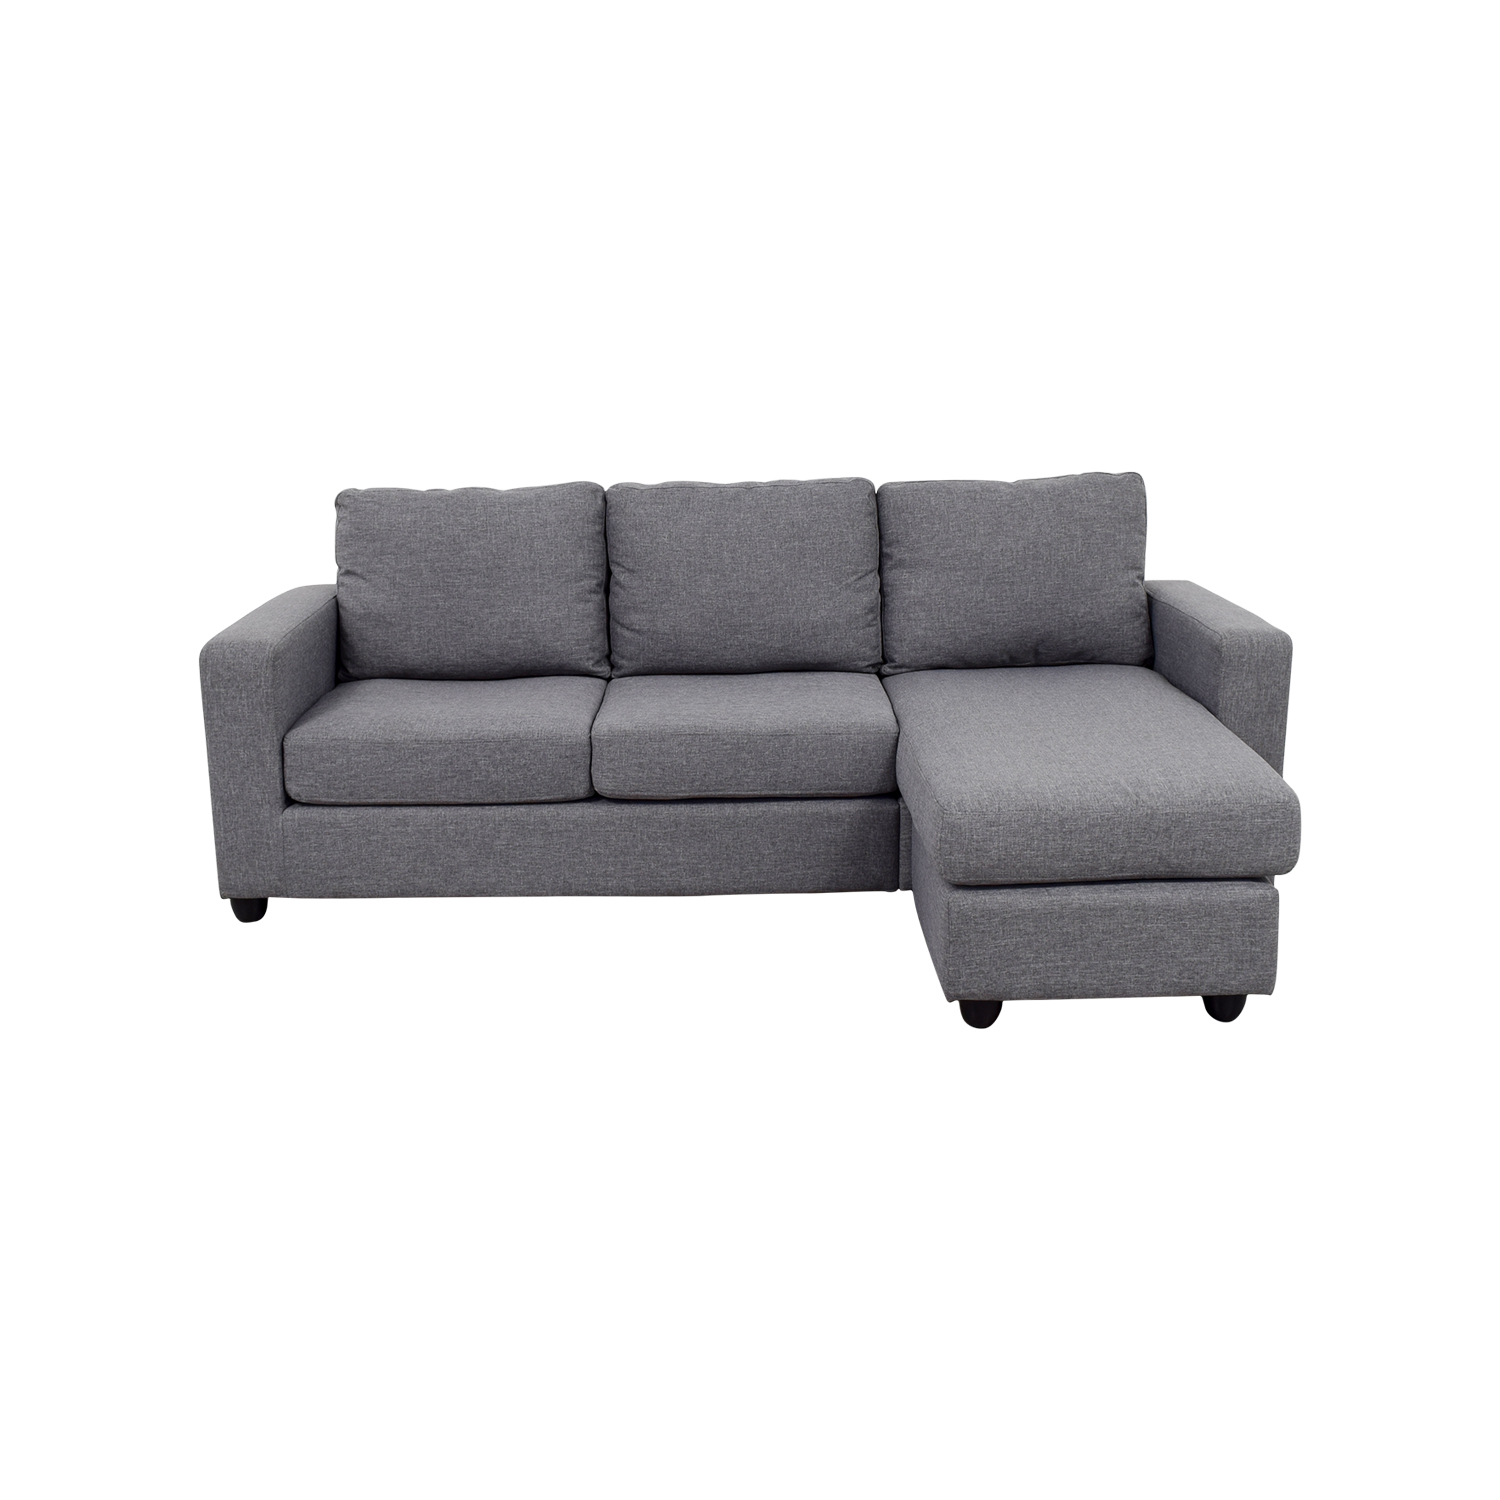 L Shaped Couches Near MeFull Size Of Living Roomlarge